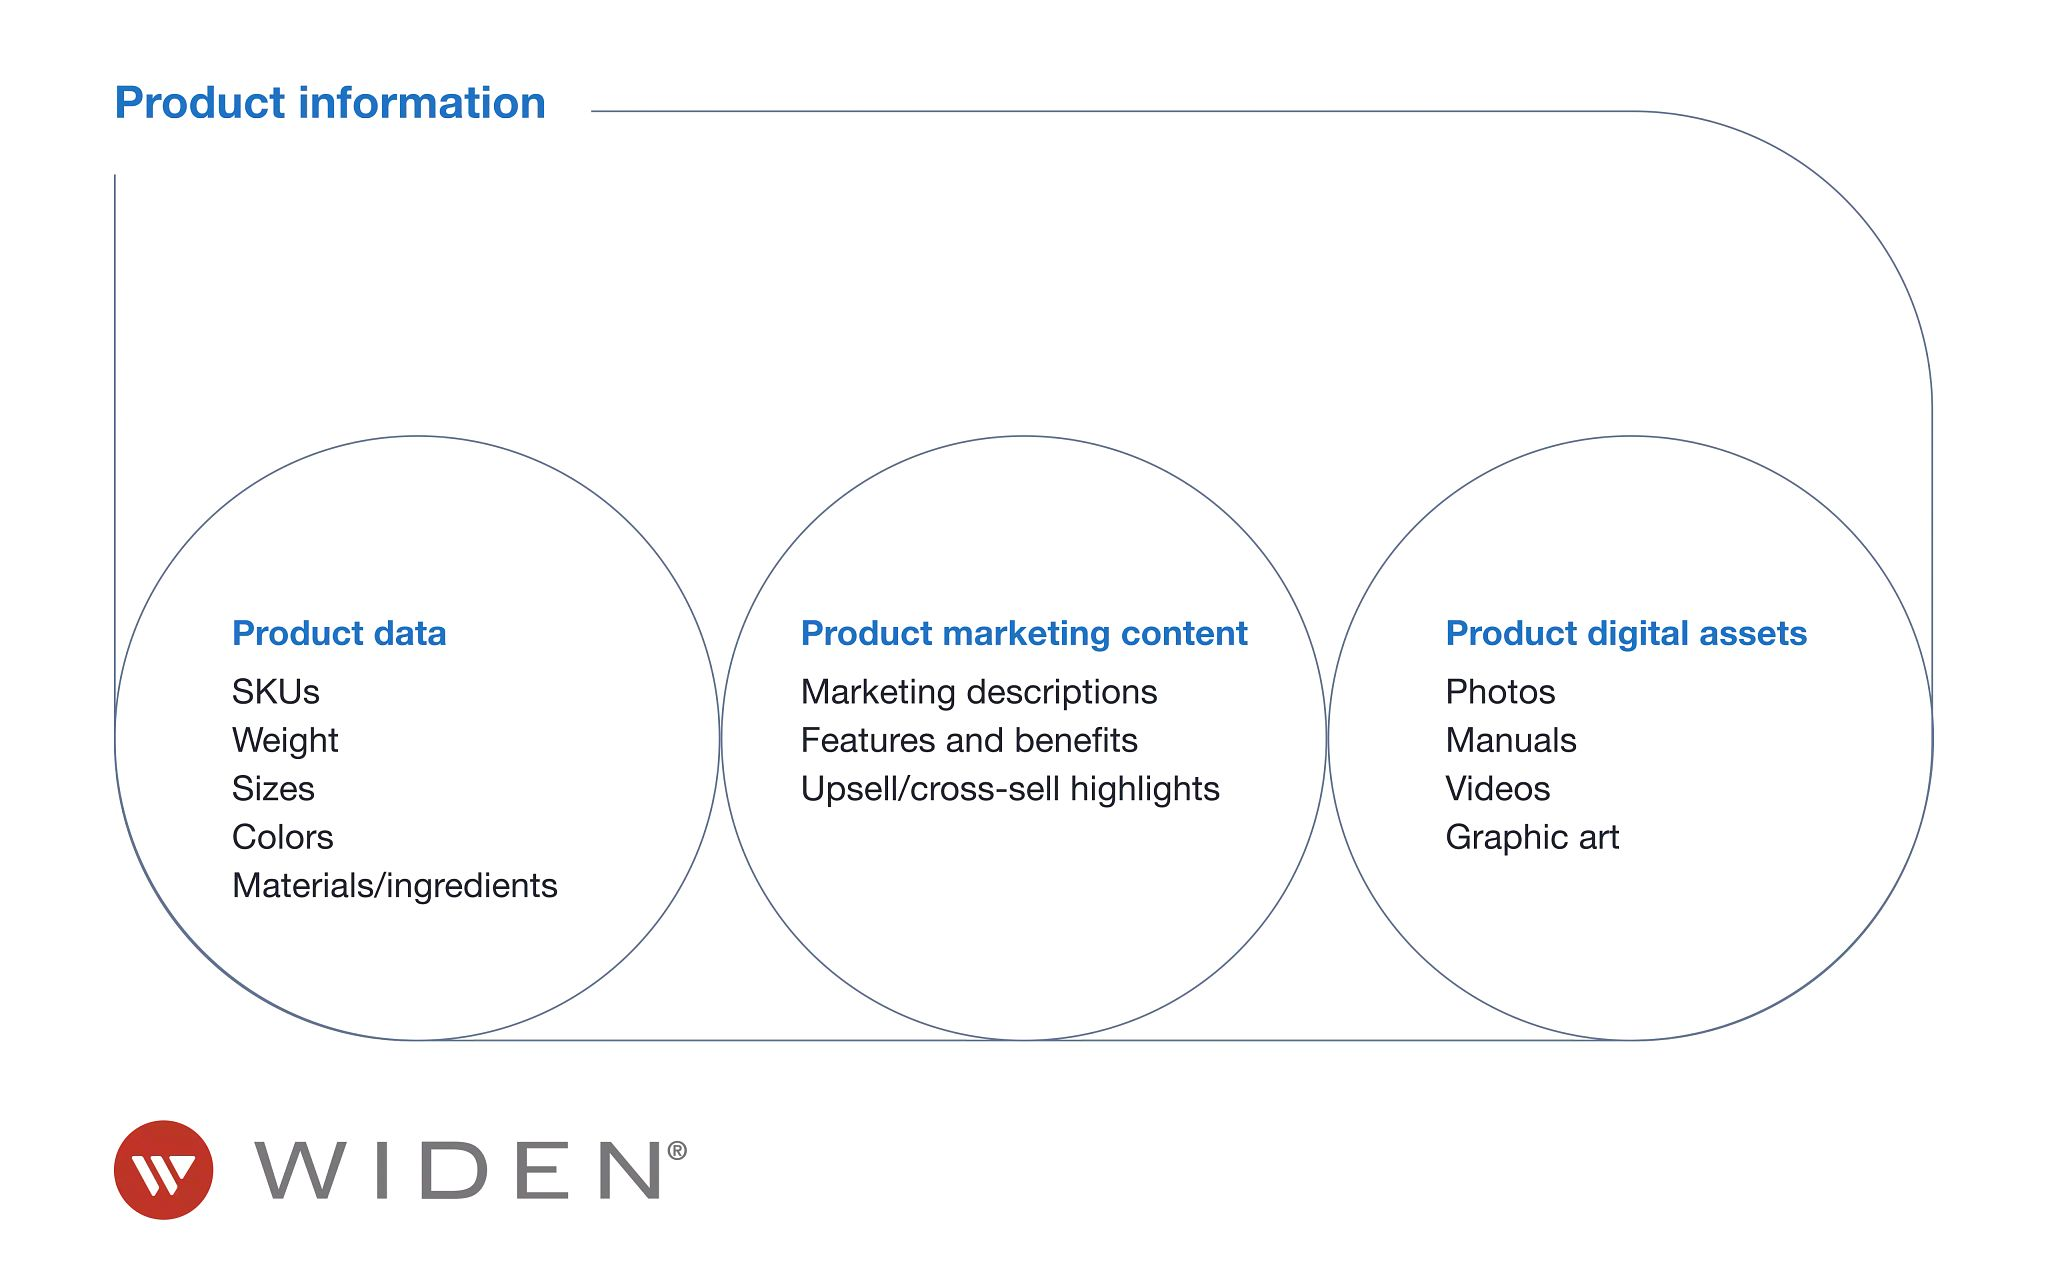 """Graphic with three circles containing product data, product marketing content, and product digital assets in individual circles along with examples of each. The circles are encompassed in a rectangle that connects to the words """"Product information"""" at the top. The Widen logo is in the bottom left corner."""